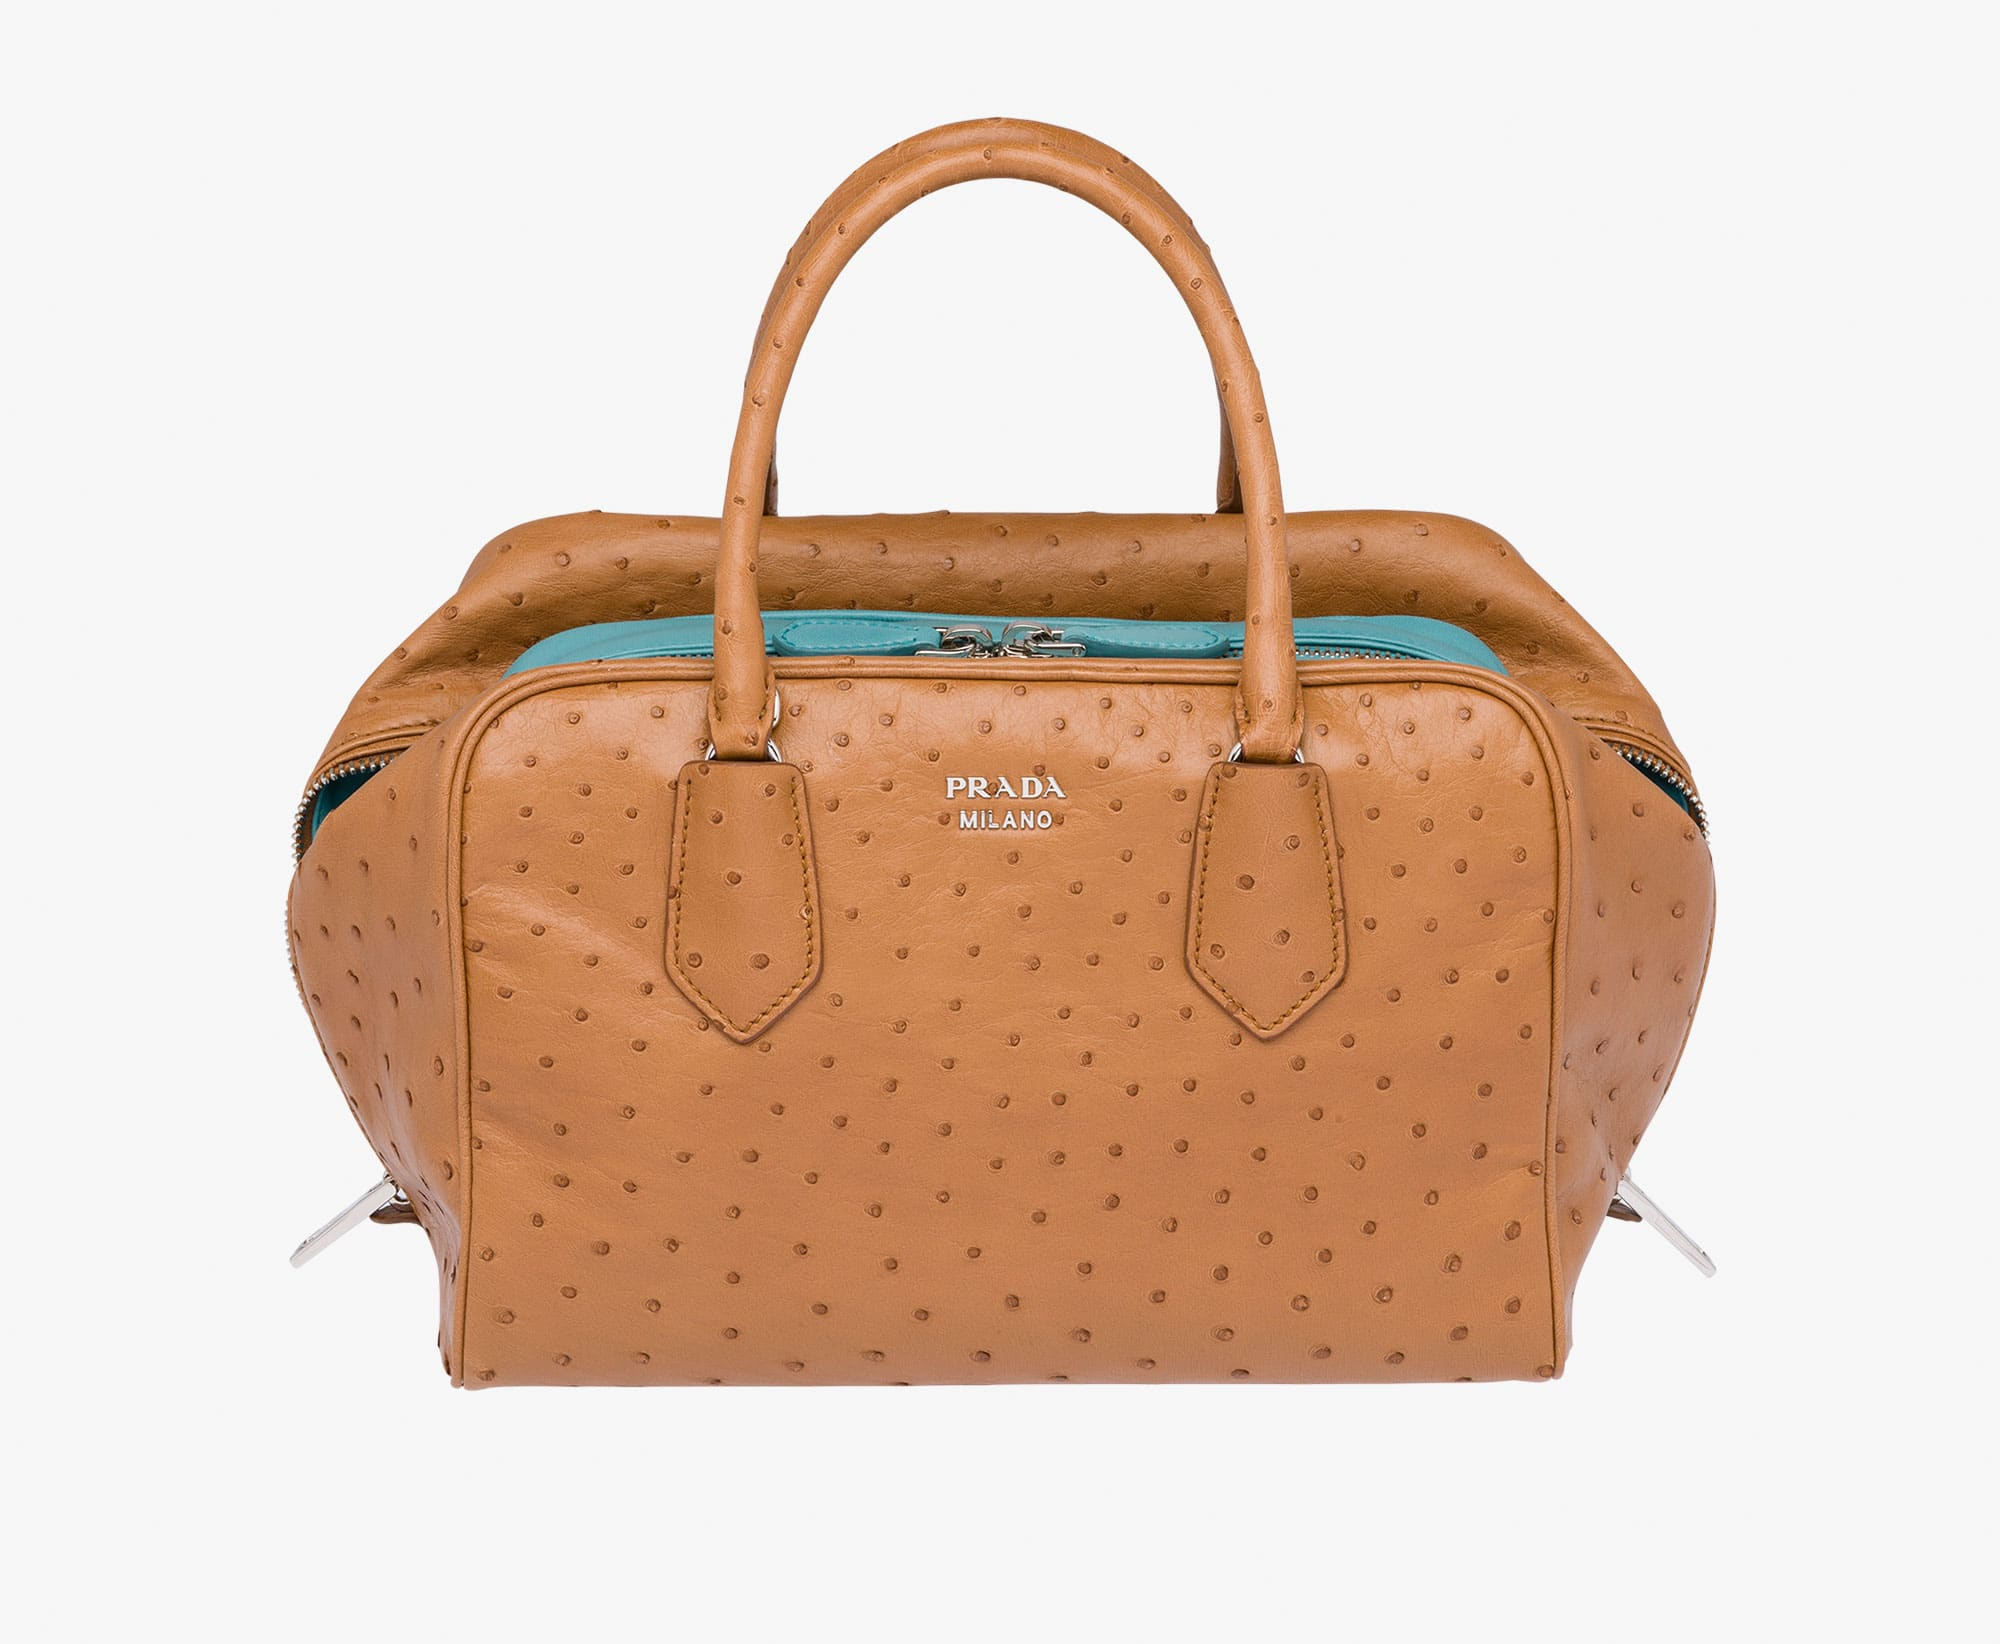 aaec77ad3 Prada Inside Tote Bag Reference Guide | Spotted Fashion